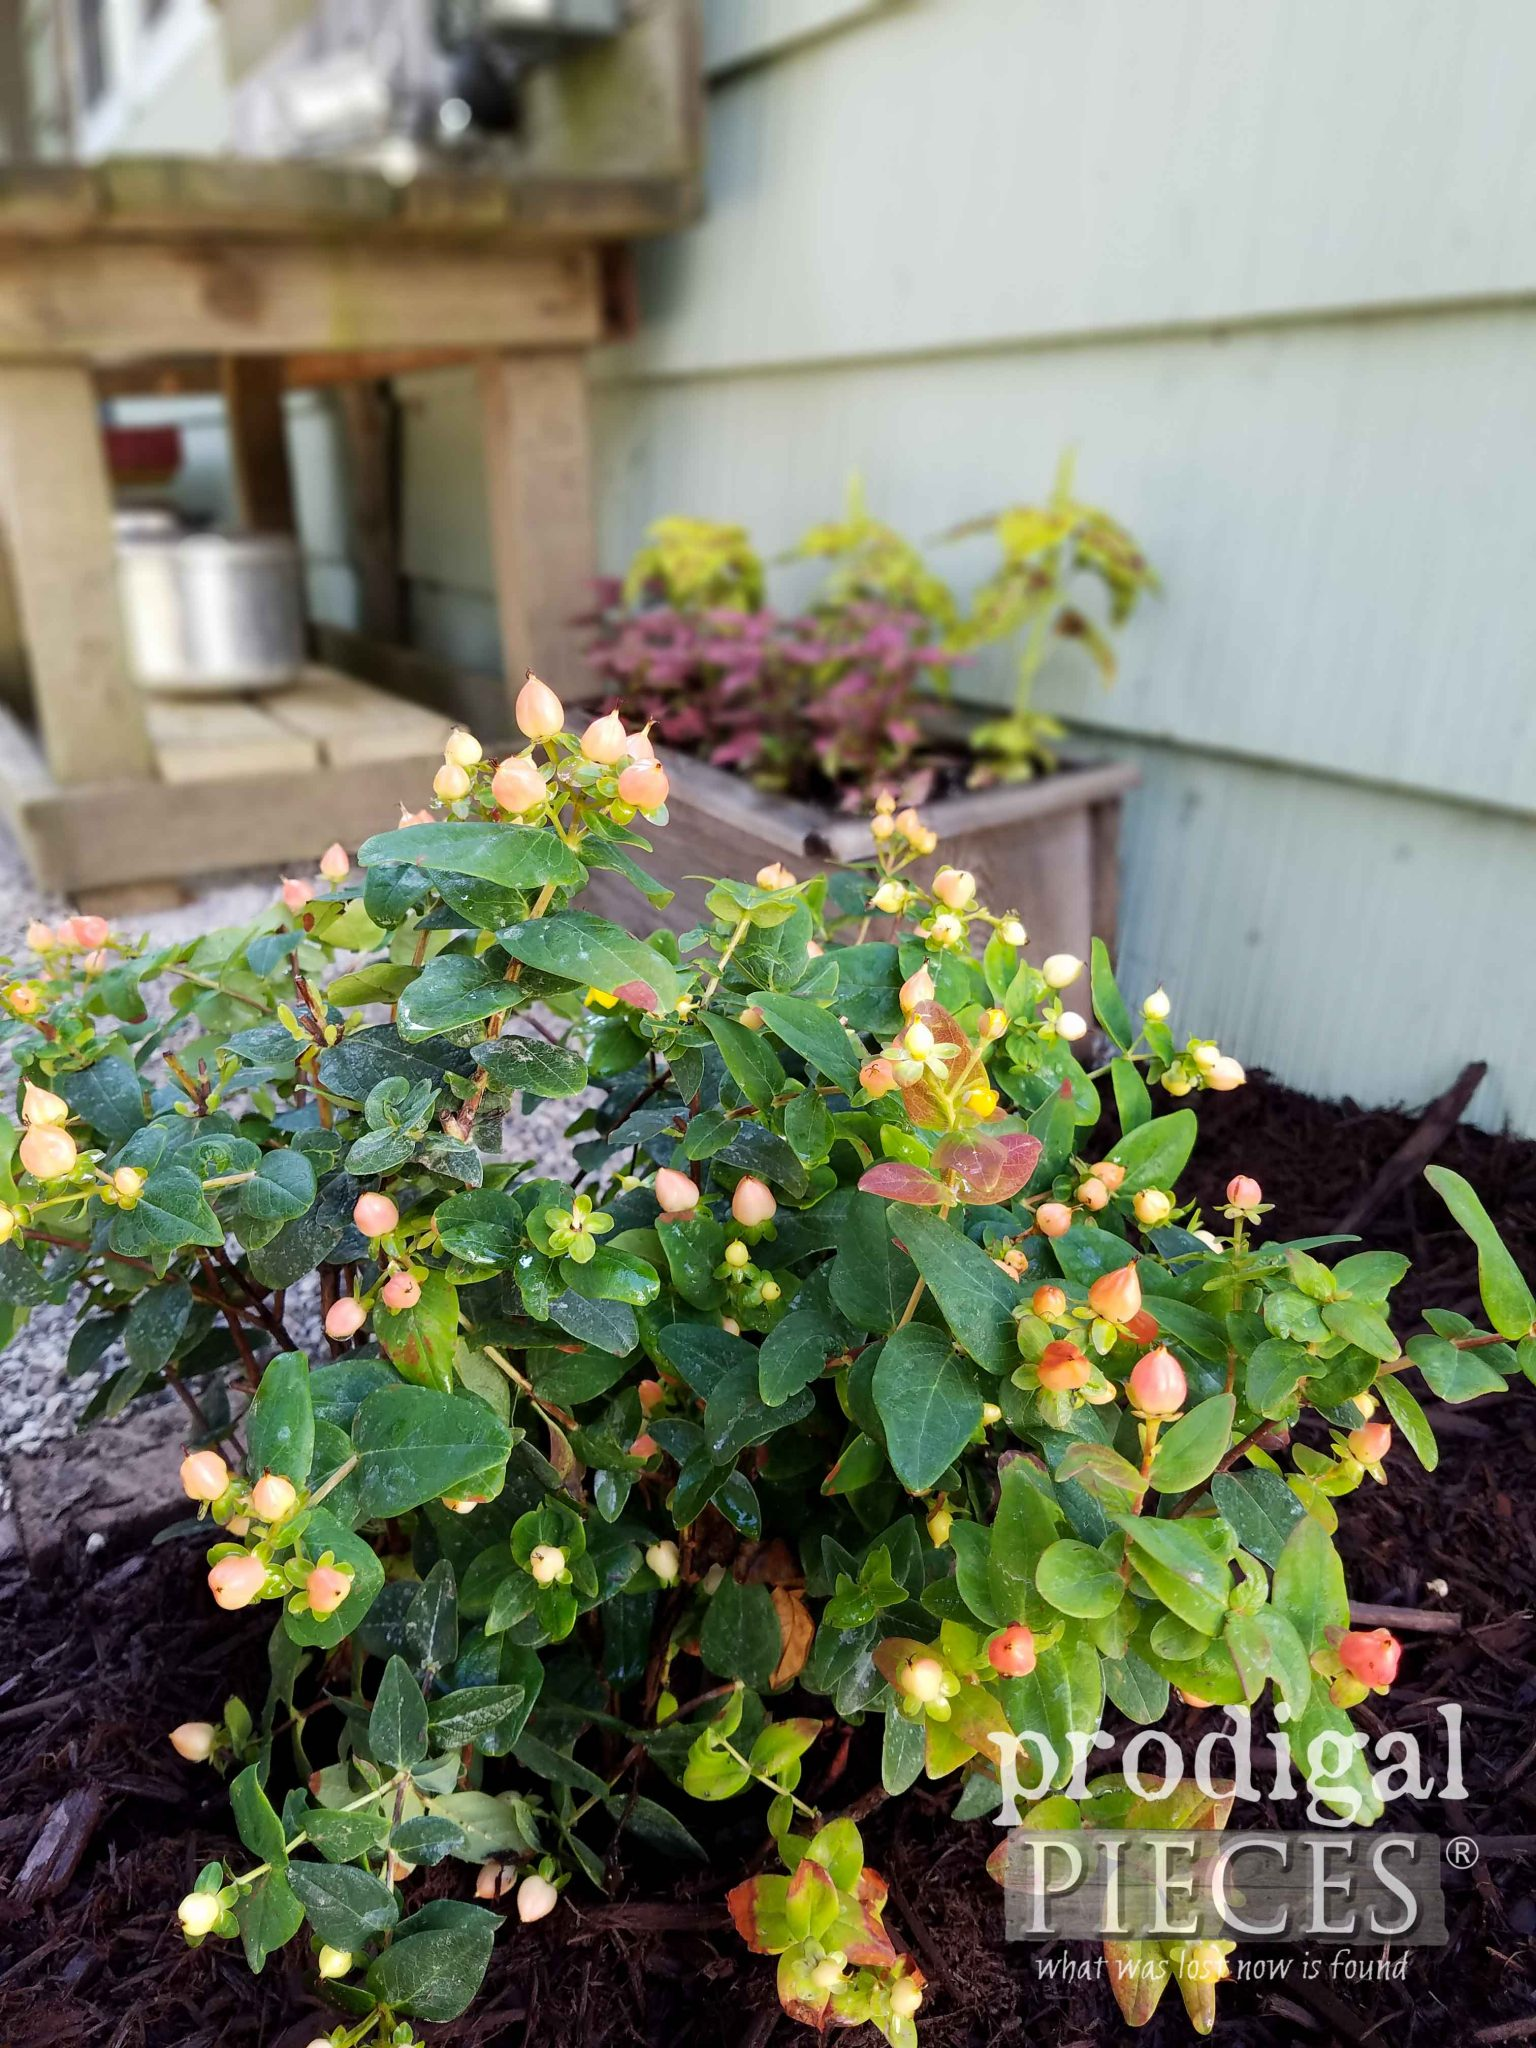 Gorgeous Pumpkin Hypericum Bush with Yellow Flower in Spring and Pumpkin-colored berries in autumn by Prodigal Pieces | prodigalpieces.com